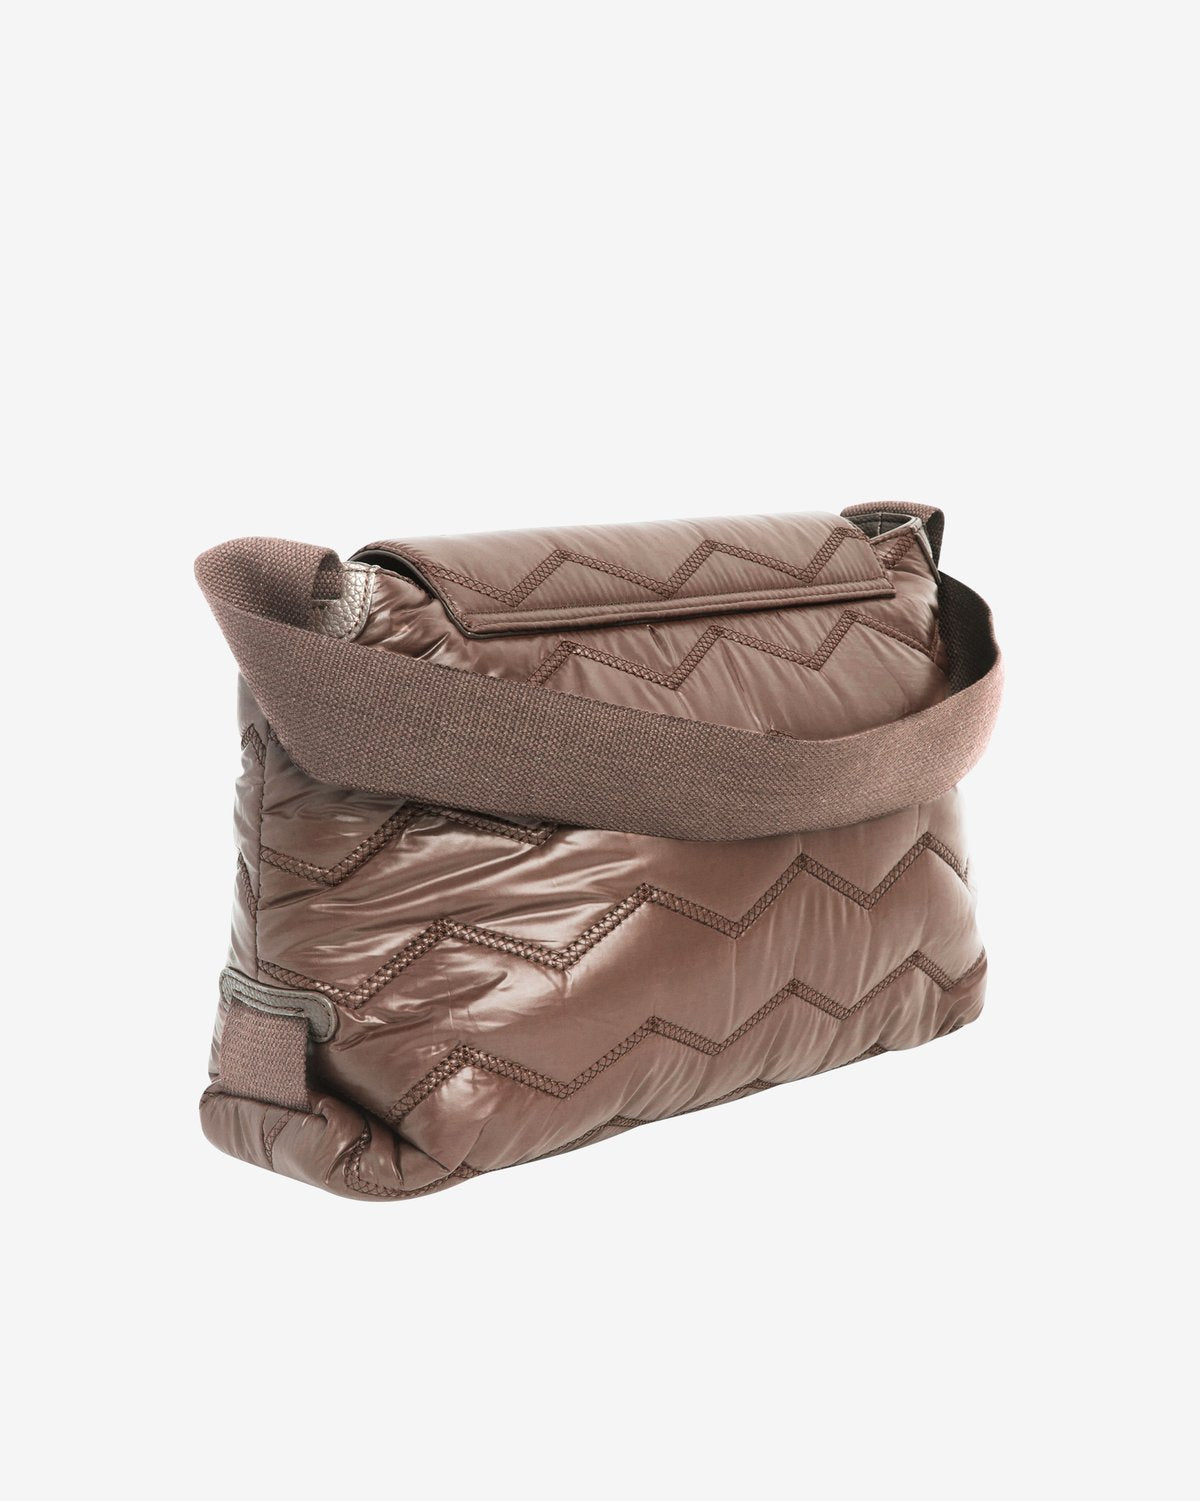 Billow Quilted Wavy Bag in Mushroom